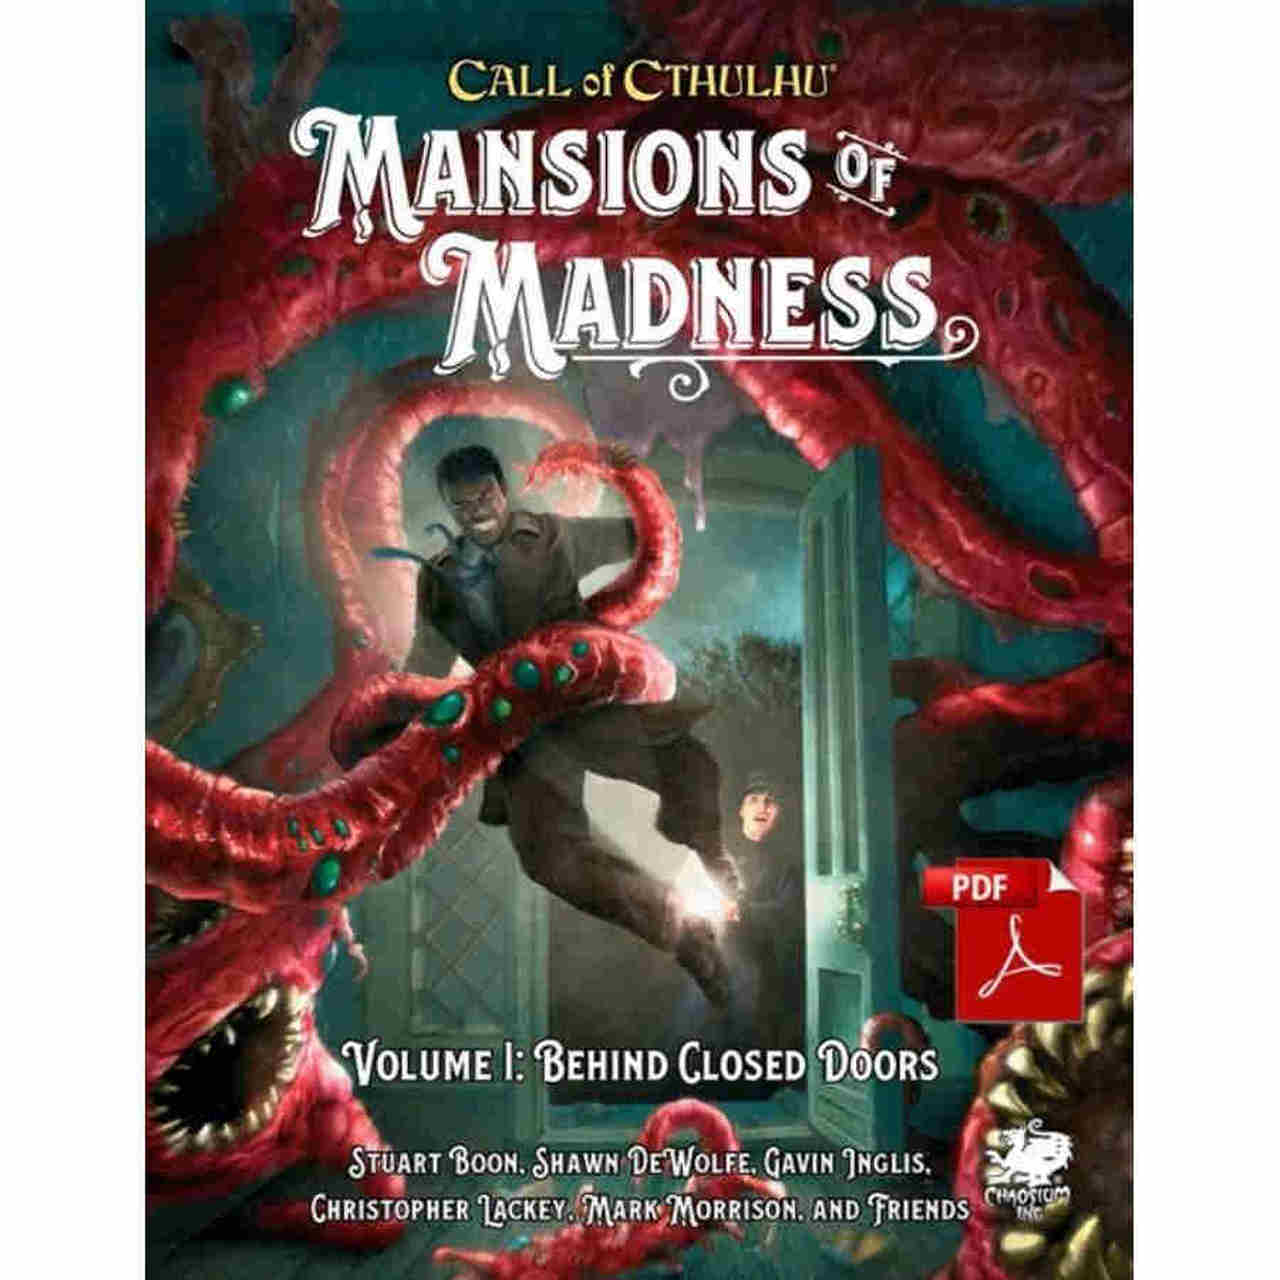 Call of Cthulhu: Mansions of Madness Vol 1 - Behind Closed Doors